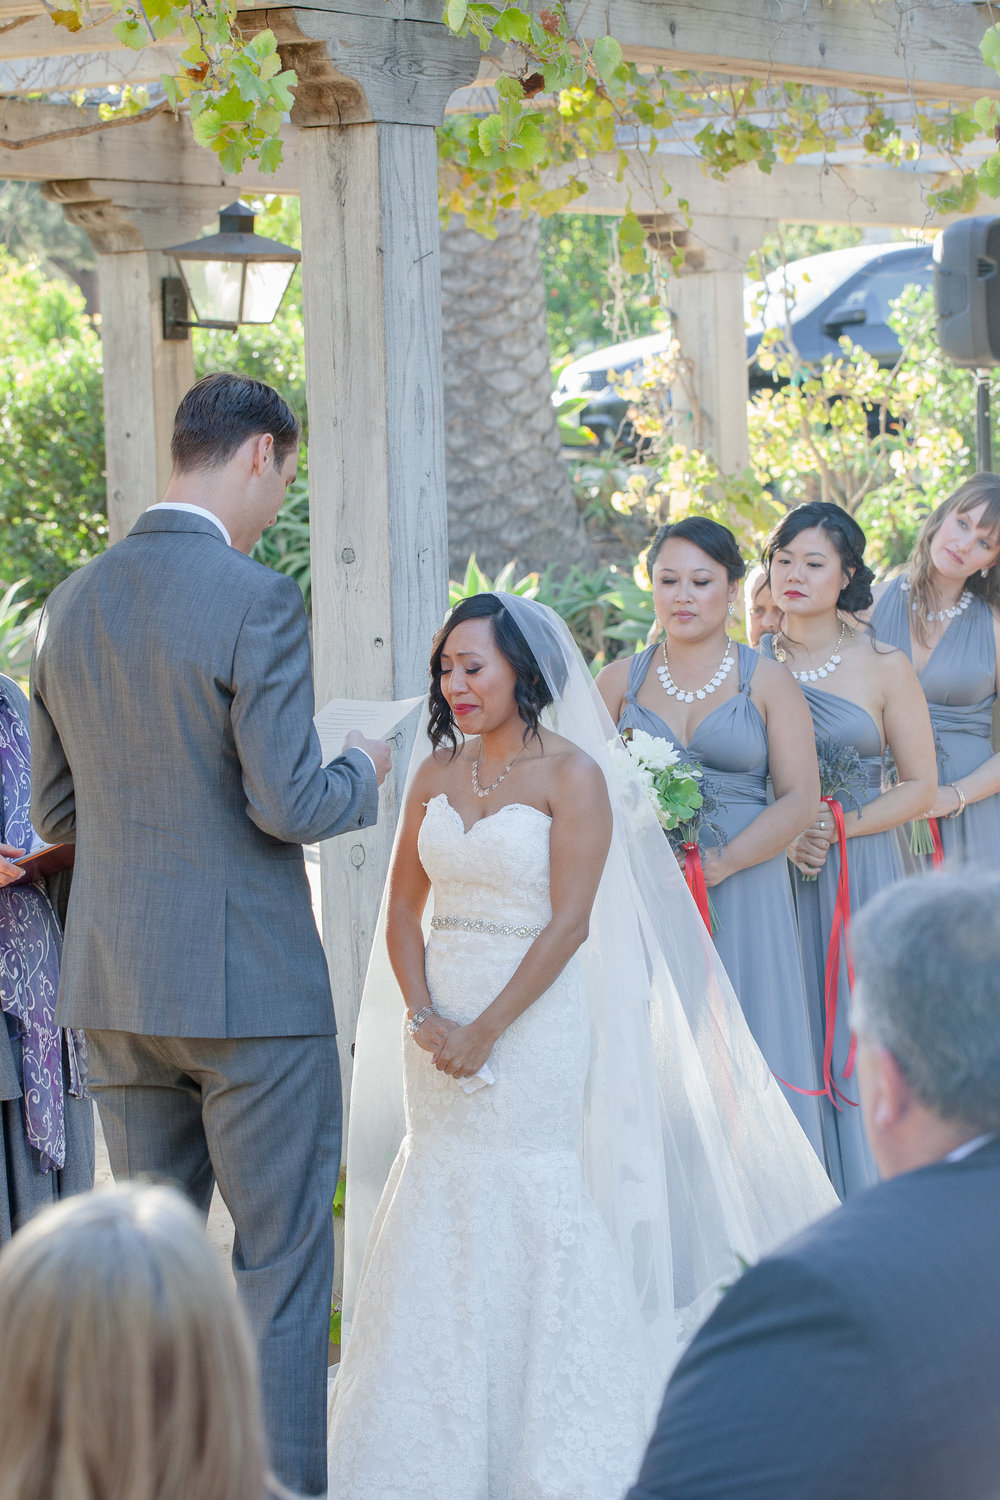 Santa Barbara Historical Museum Wedding Ceremony Officiated by Miriam Lindbeck